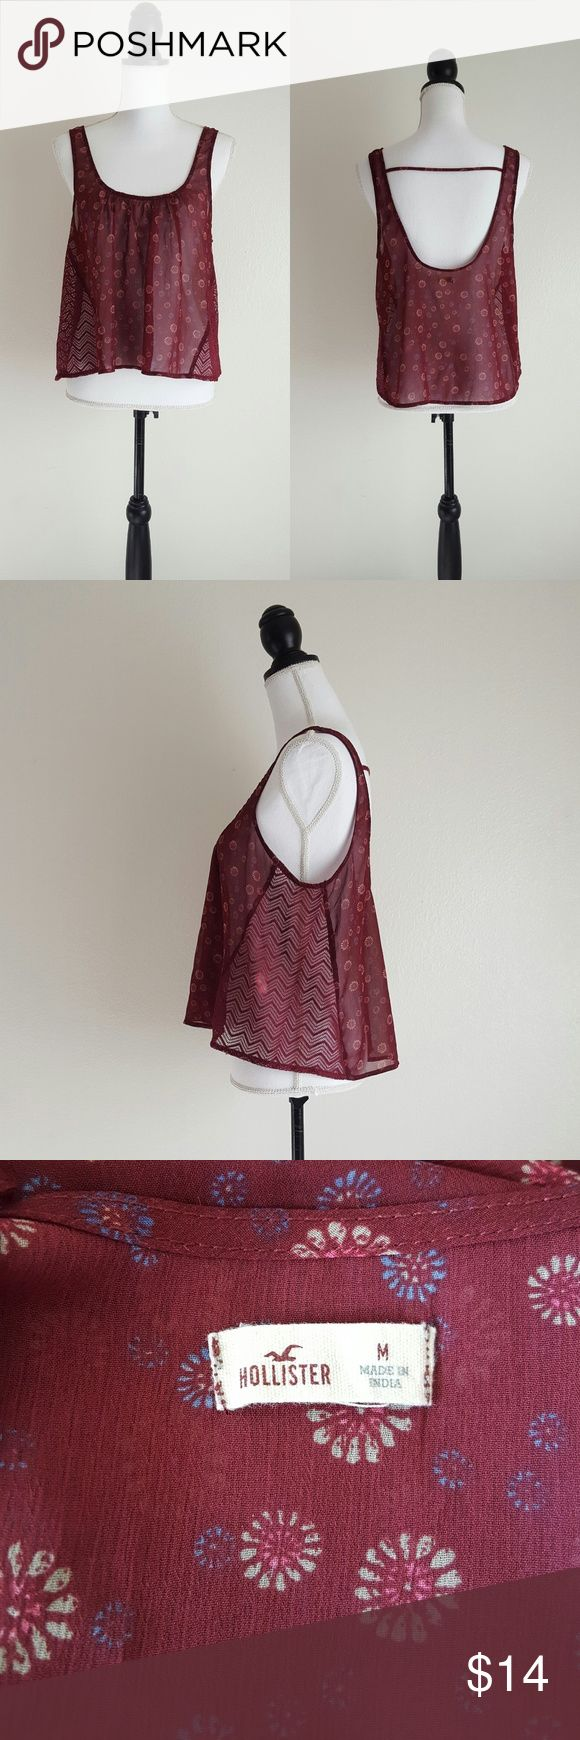 Hollister Top Burgundy floral, hi-lo top. Great condition Hollister Tops